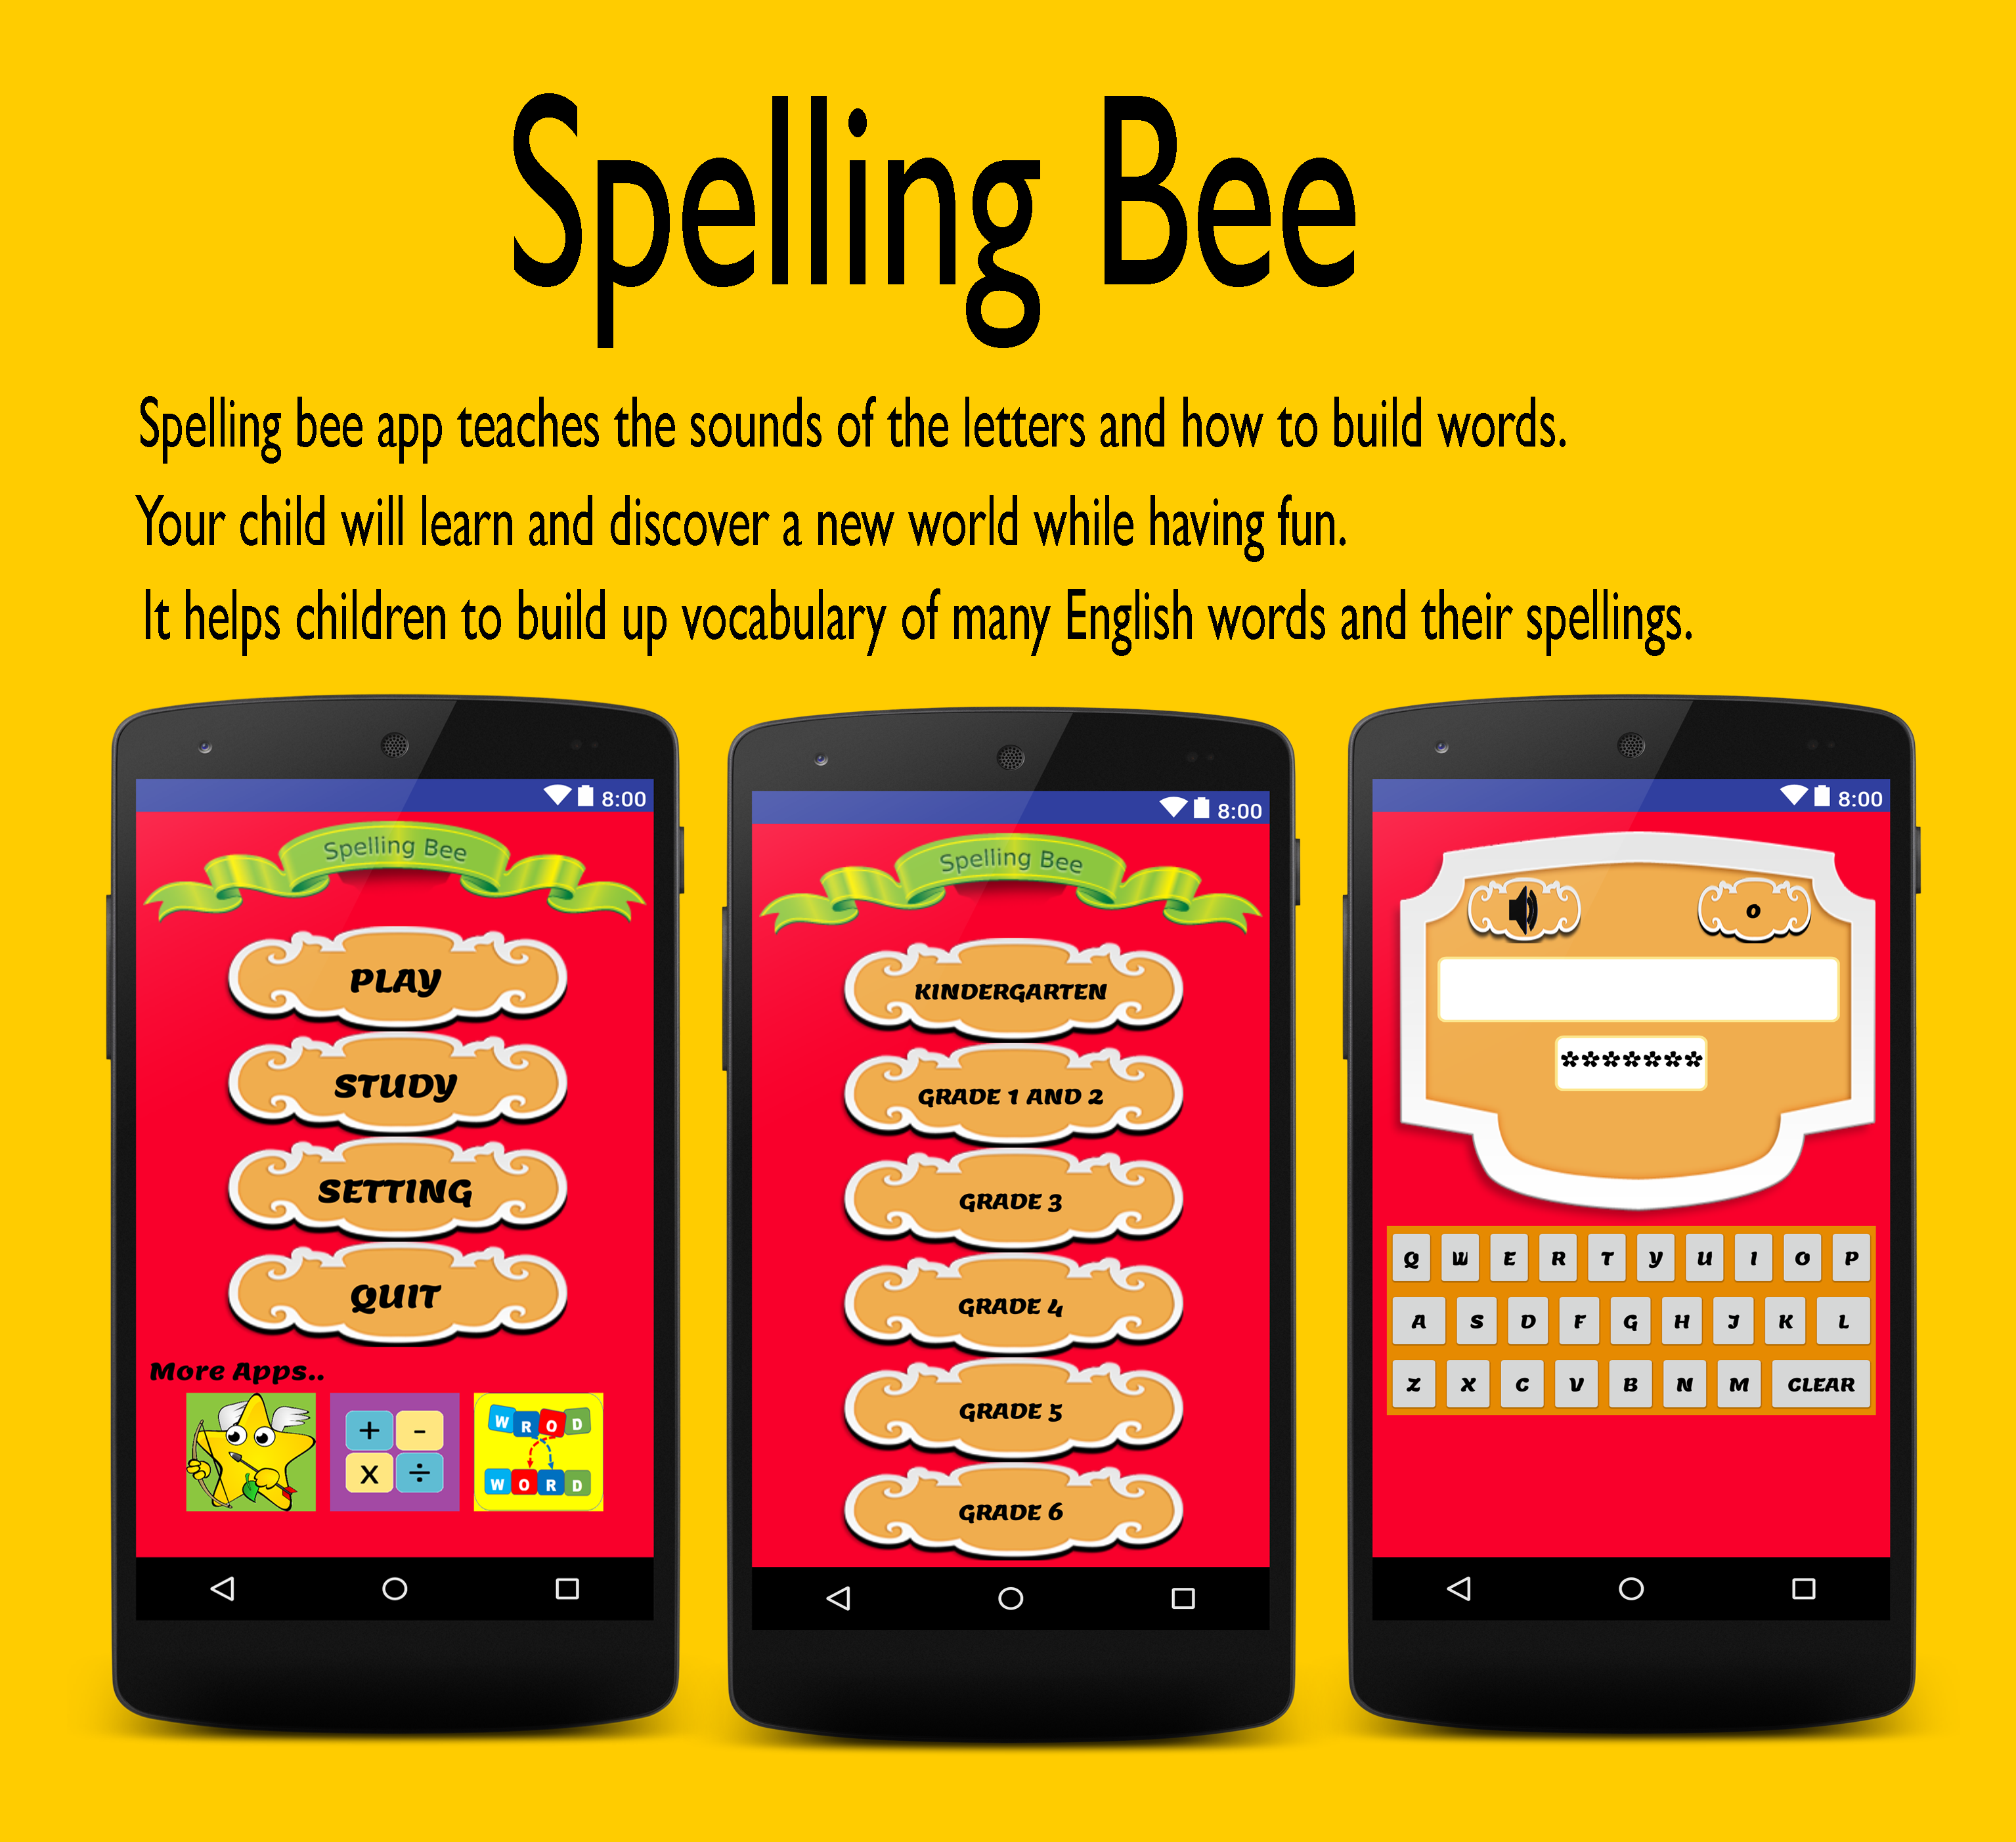 Spelling bee app teaches the sounds of the letters and how